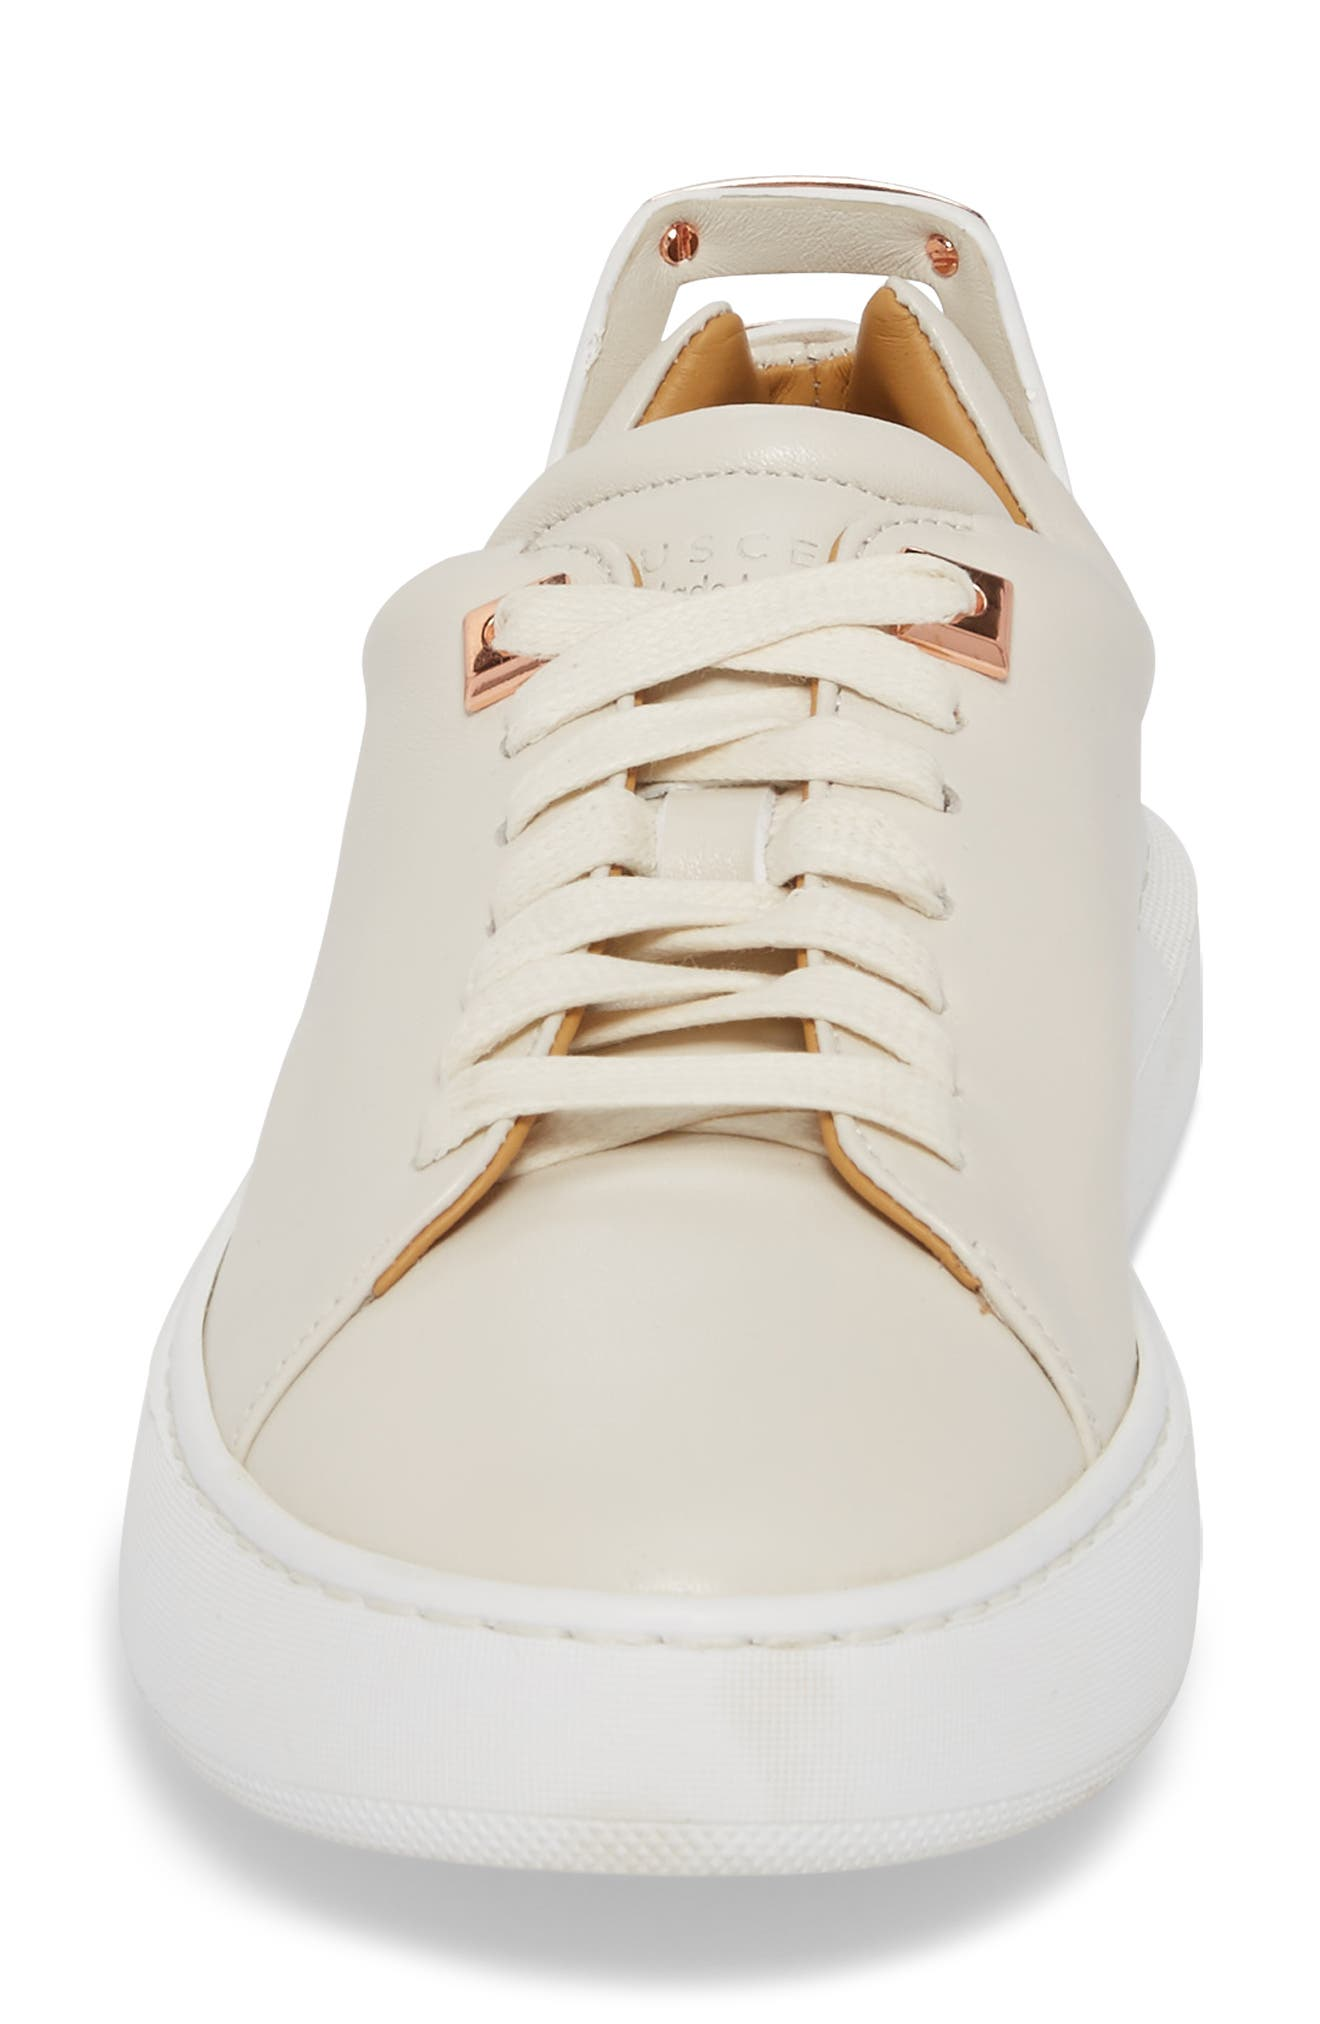 Uno Low Top Sneaker,                             Alternate thumbnail 4, color,                             Off White